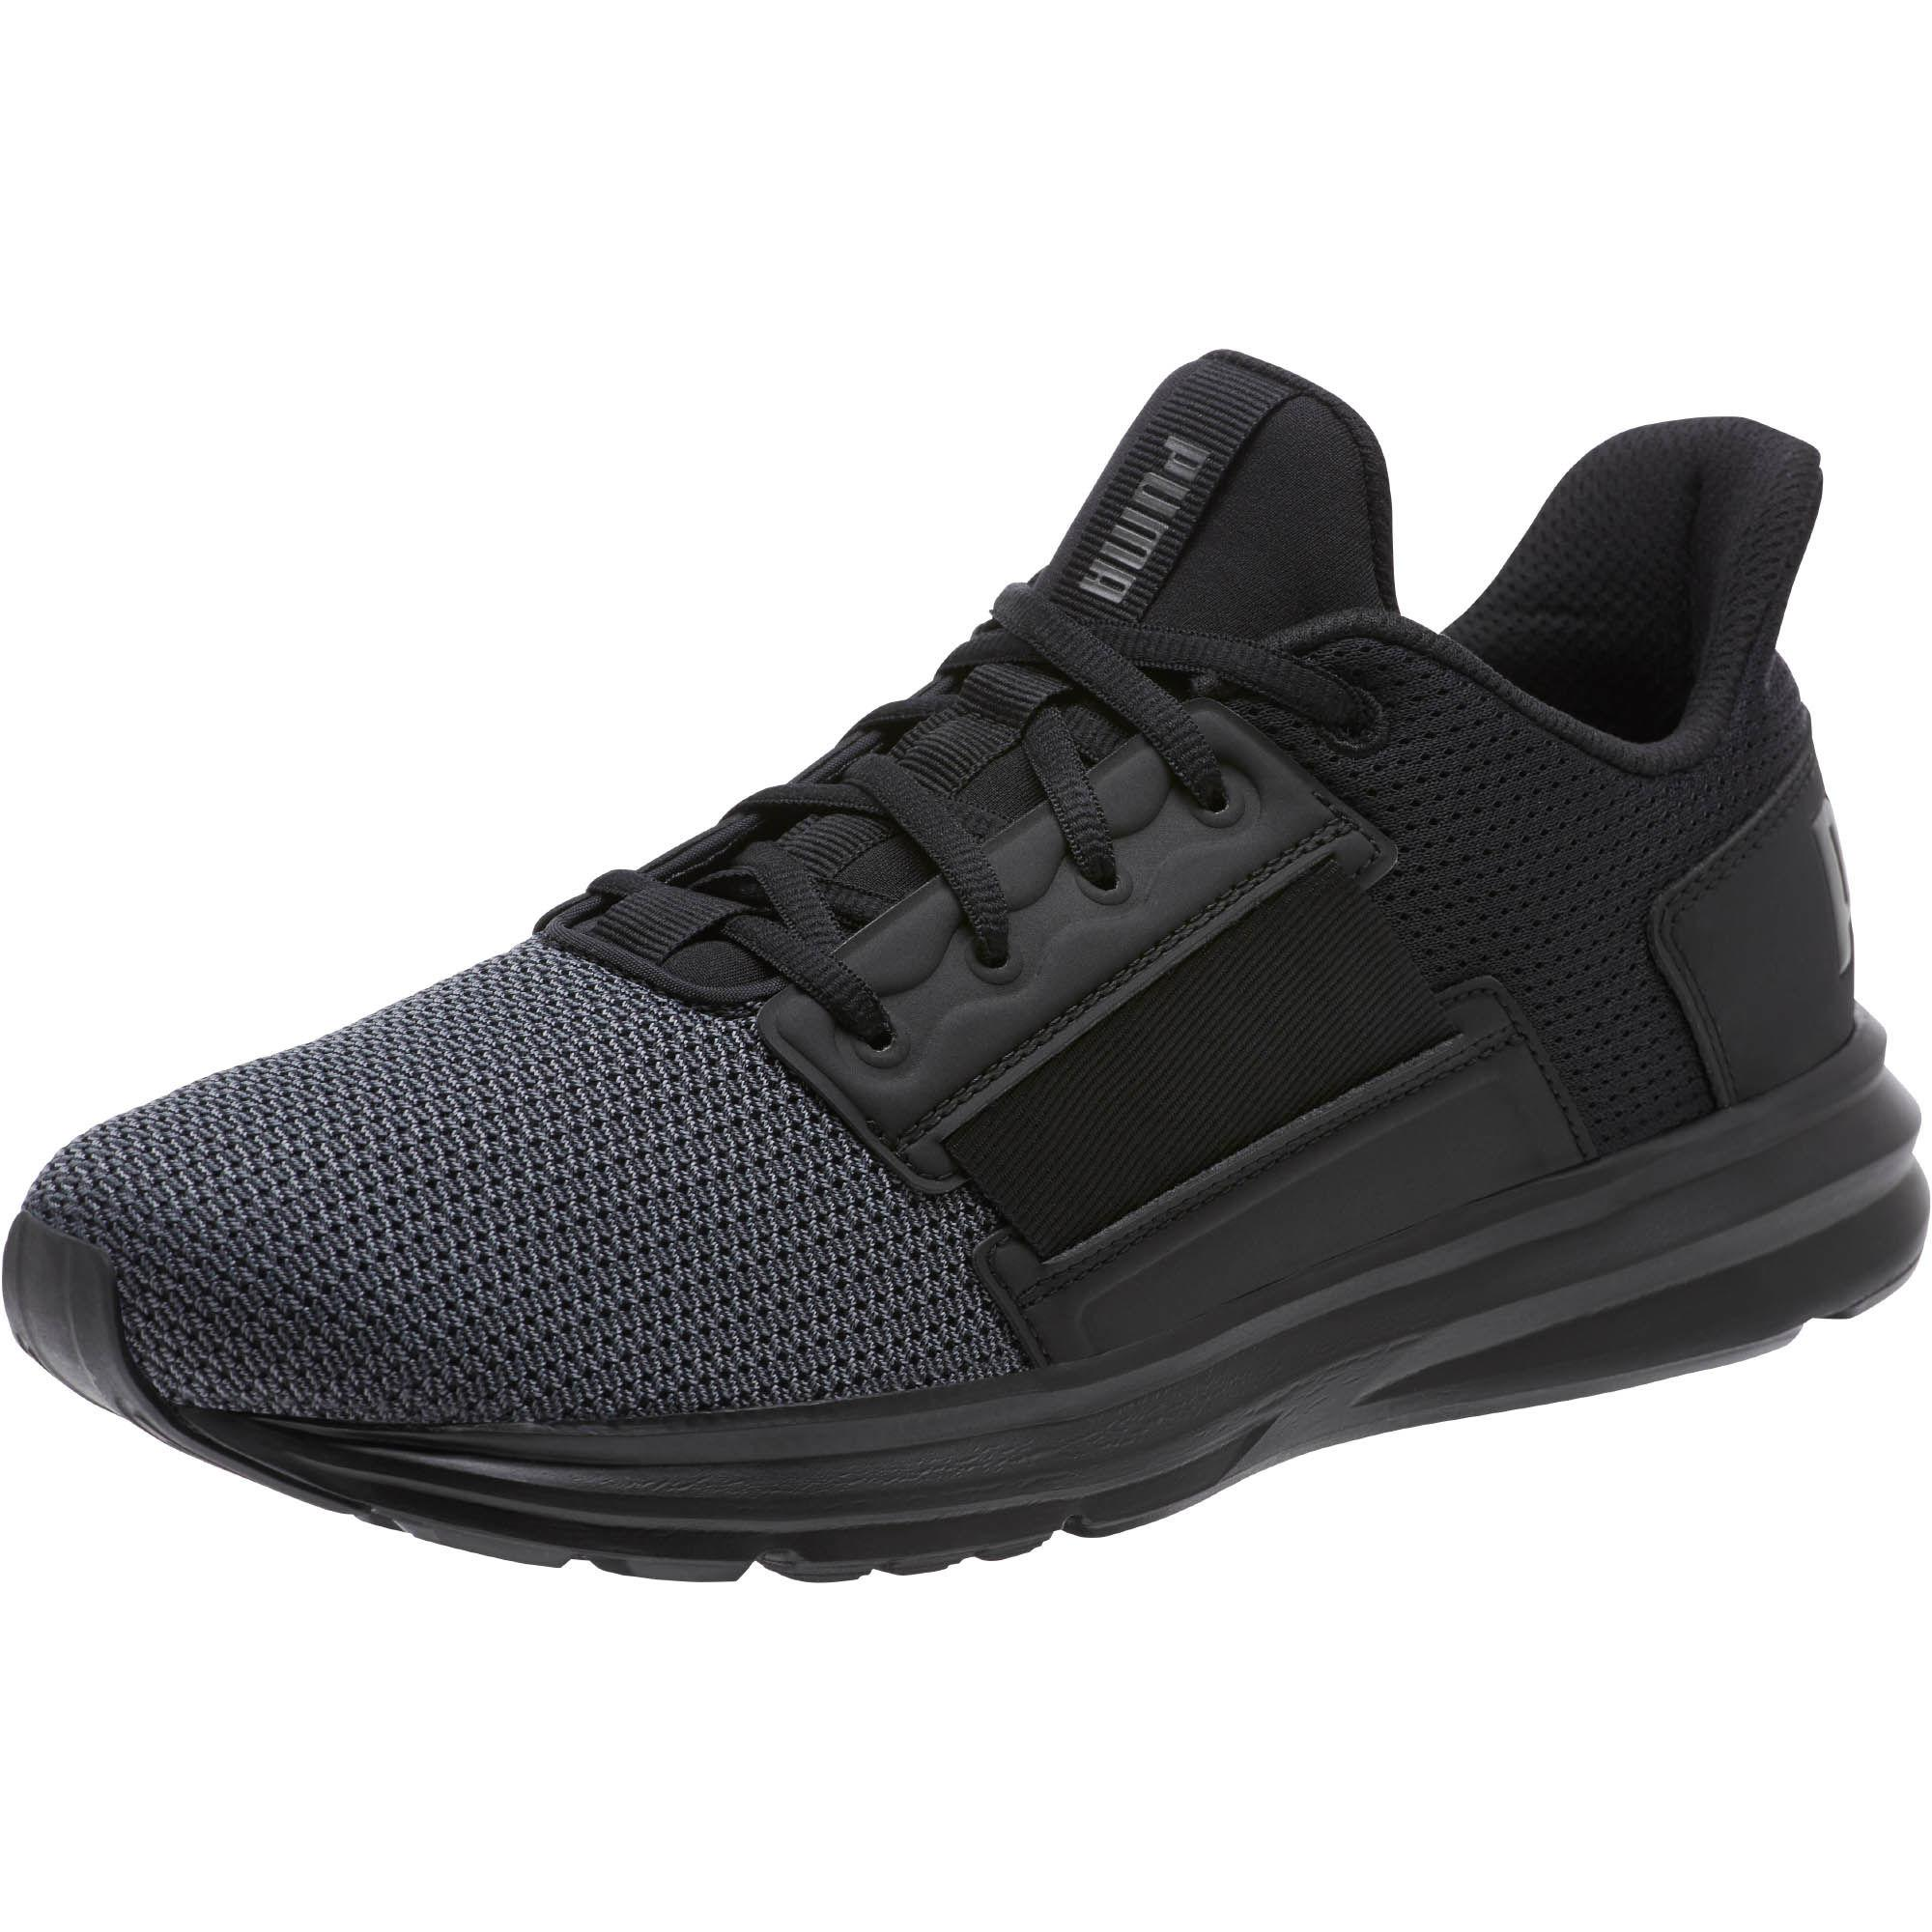 35f9a4bde7e7 Lyst - Puma Enzo Street Running Shoes in Black for Men